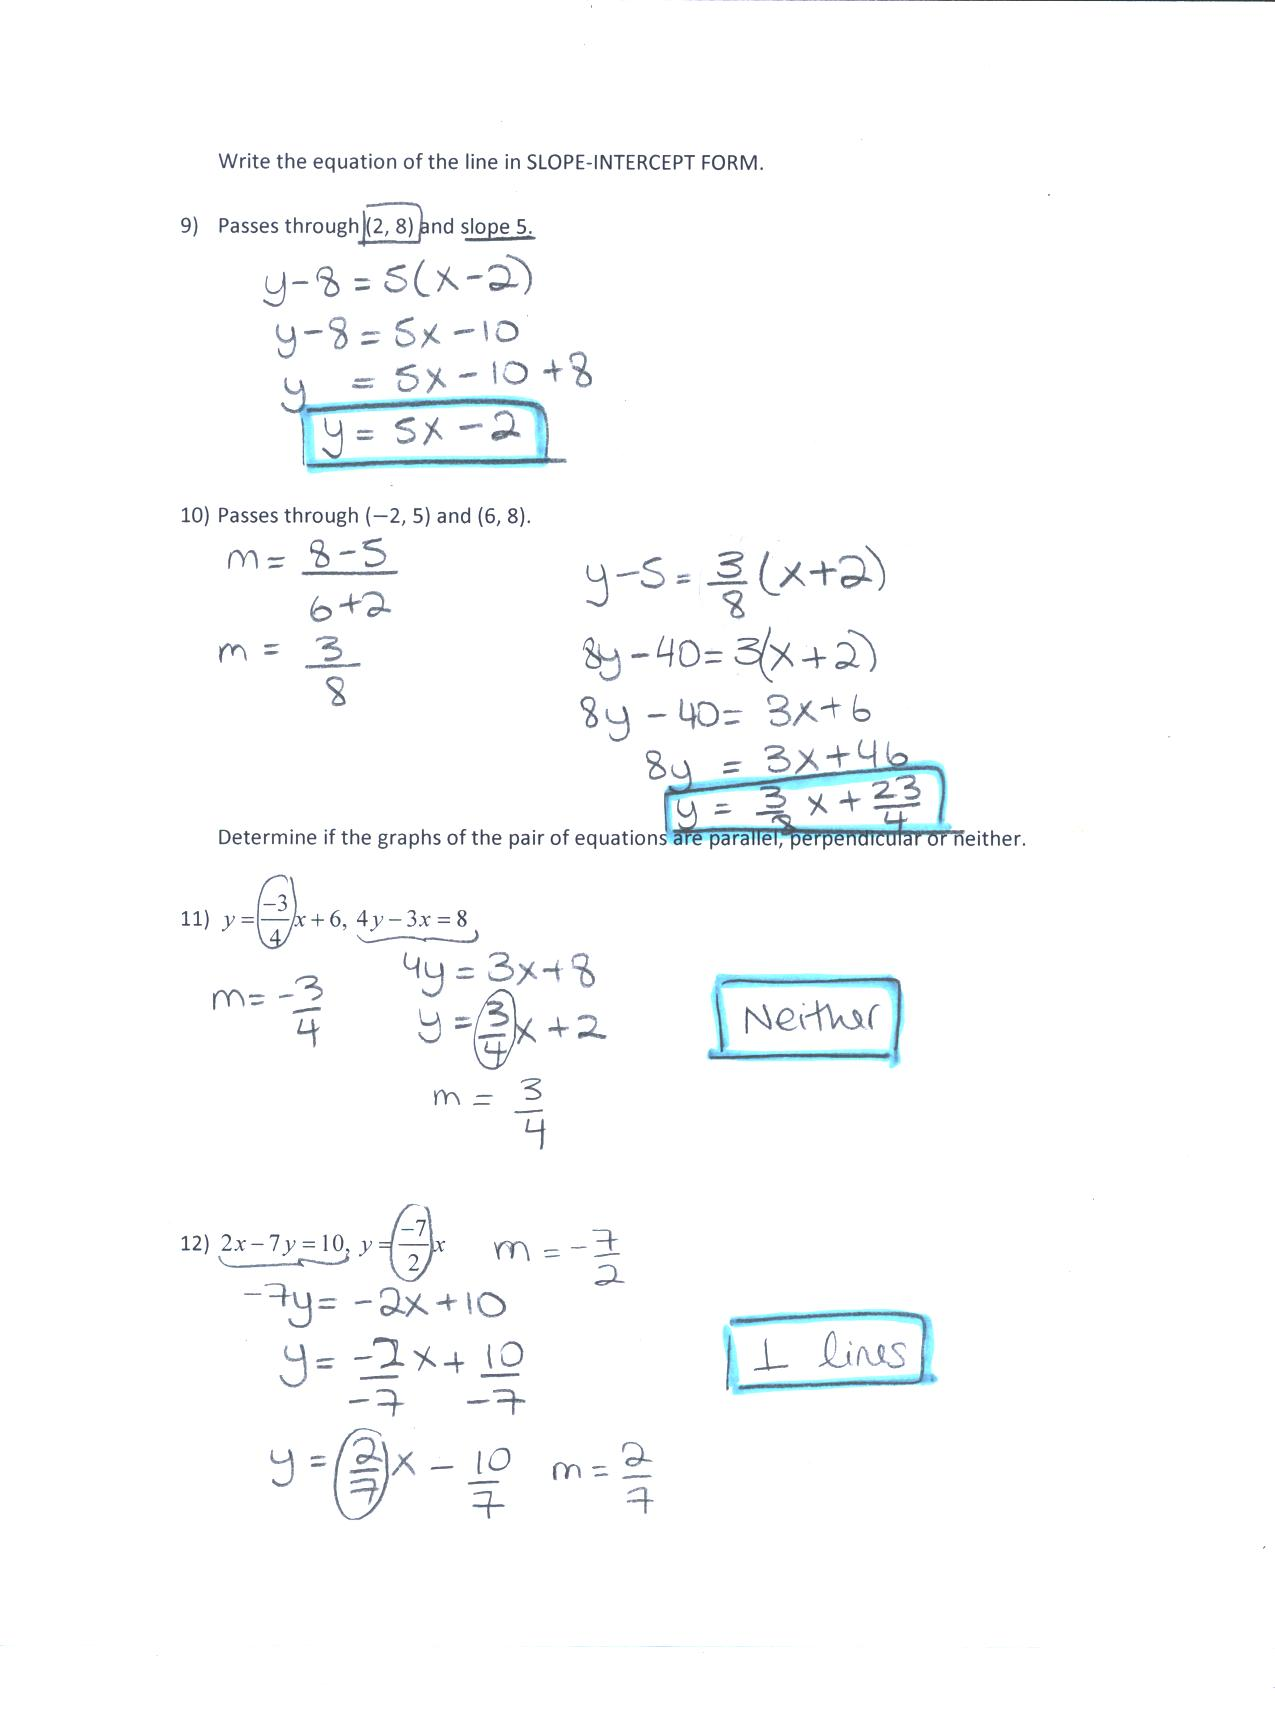 Worksheet Multiplying Polynomials By Monomials Worksheet Grass